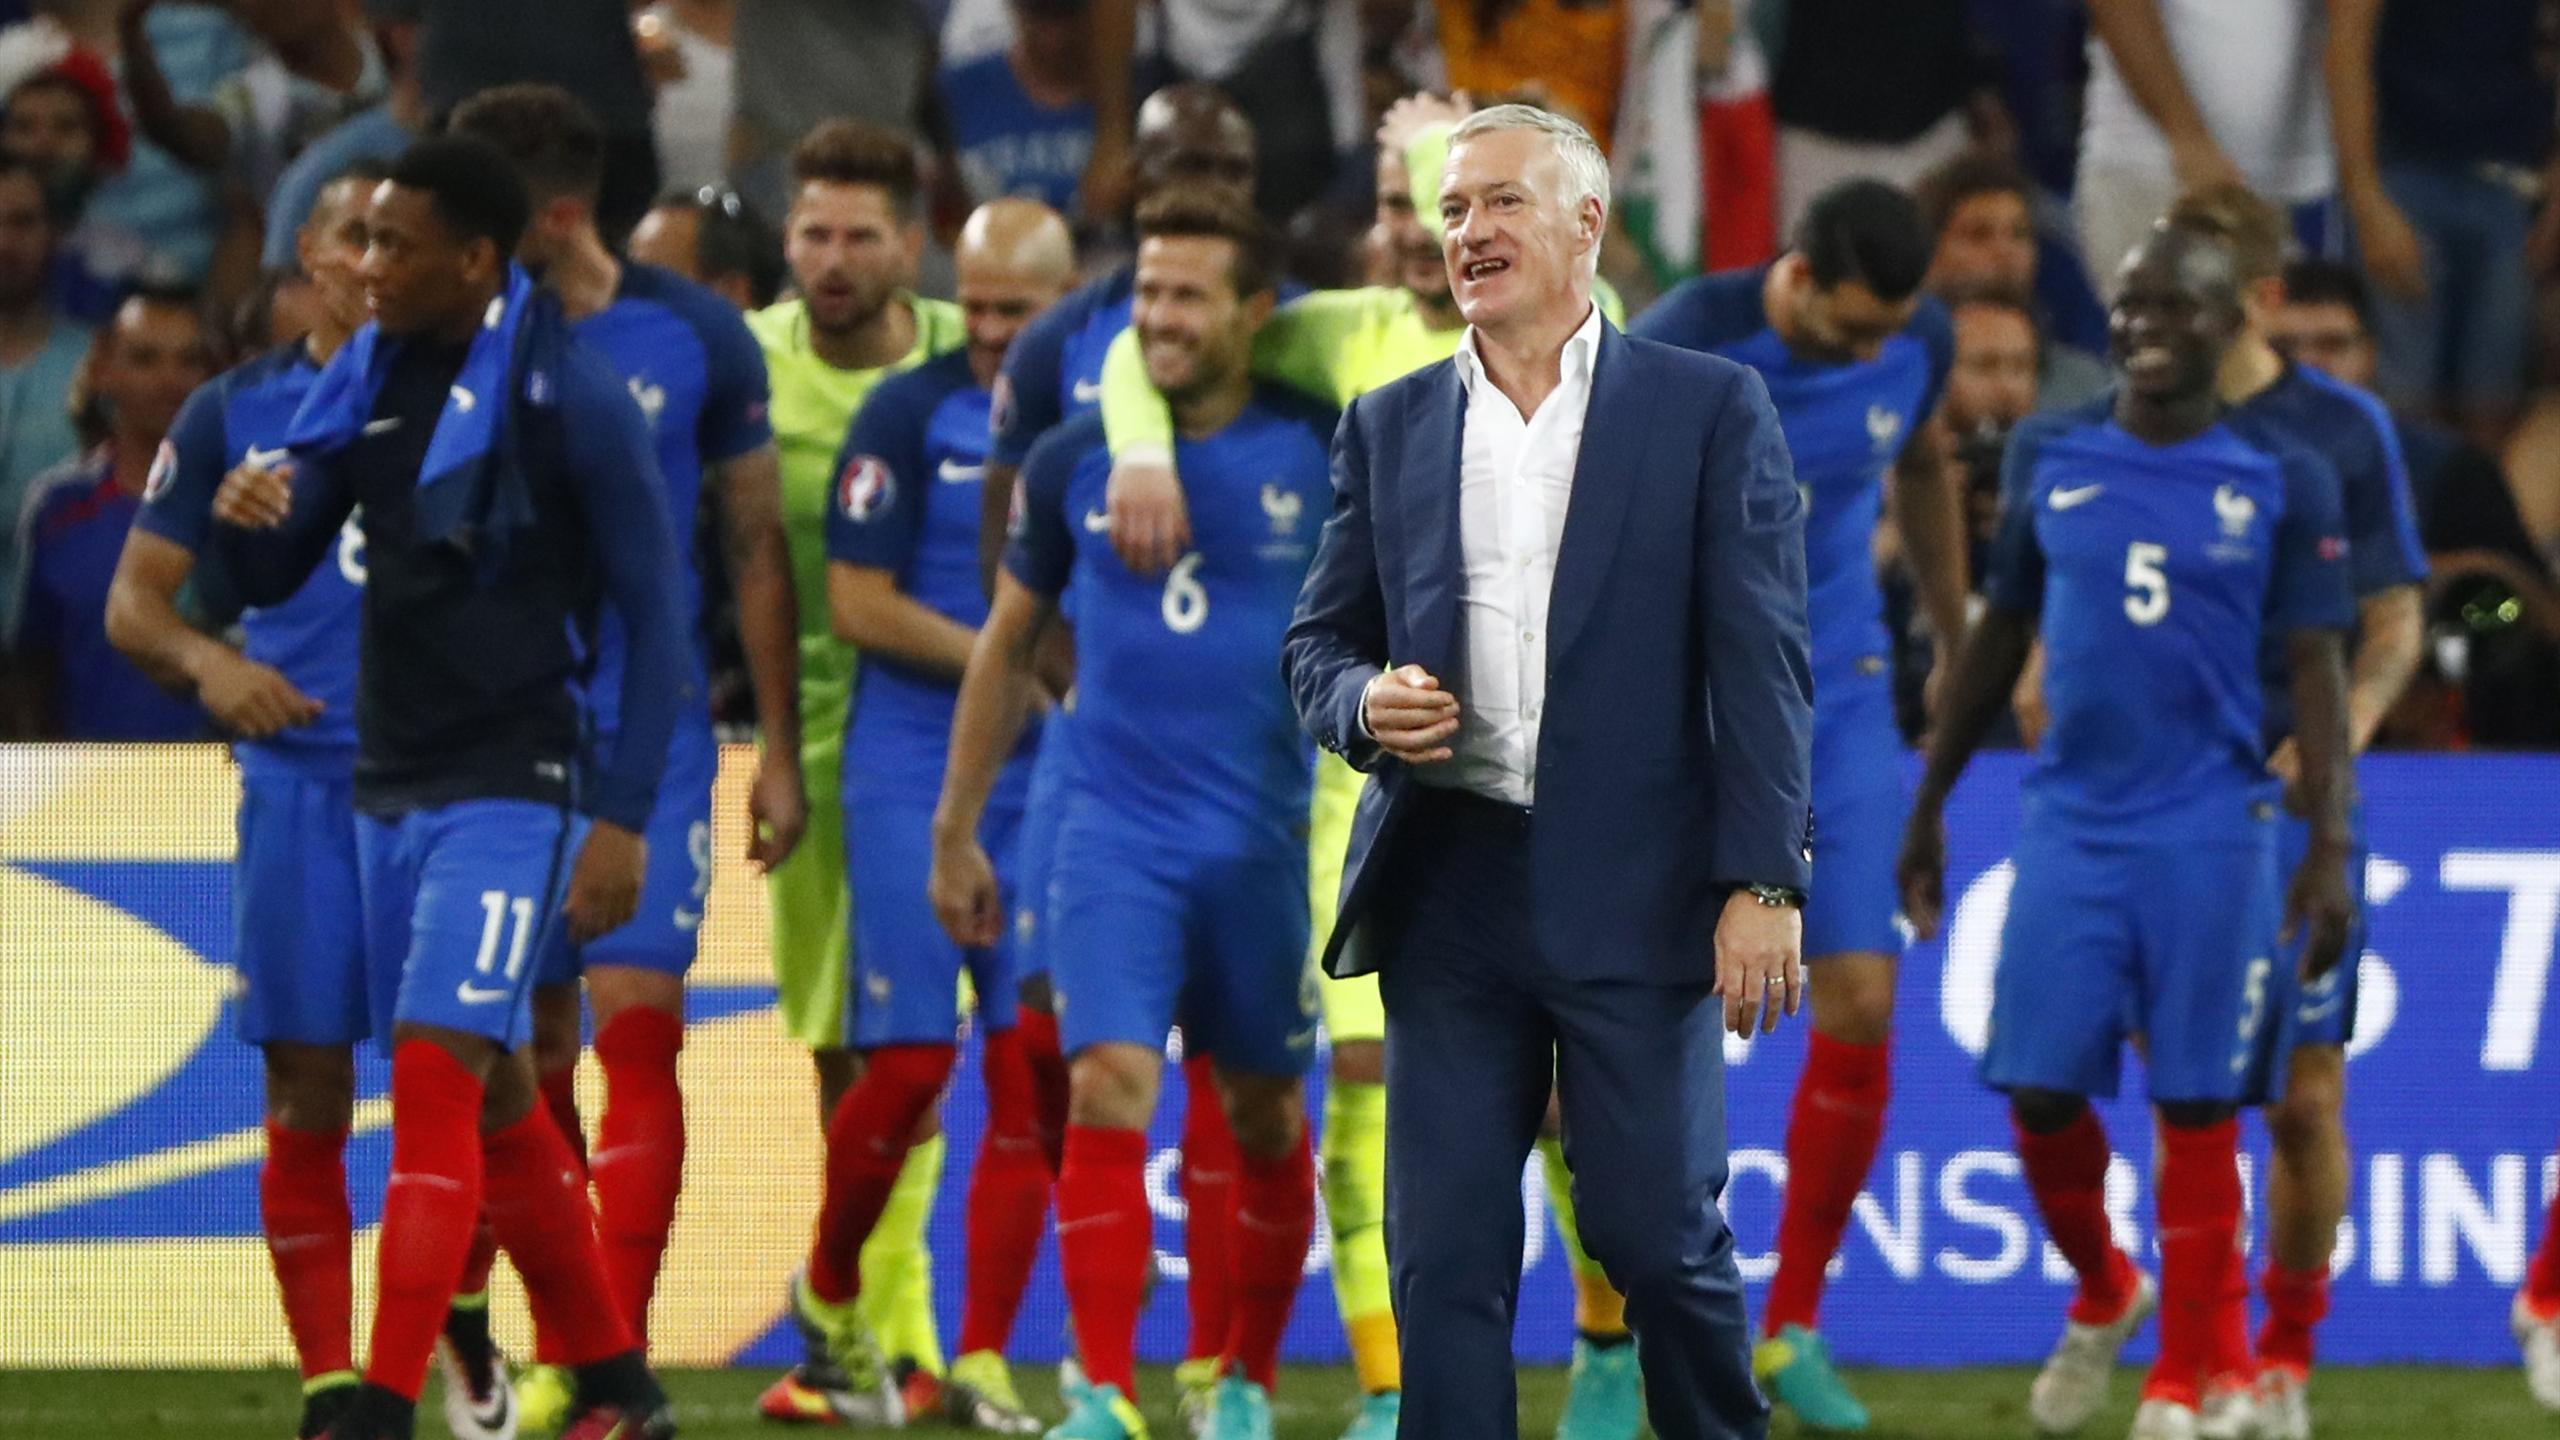 France Head Coach Didier Deschamps at the end of the game